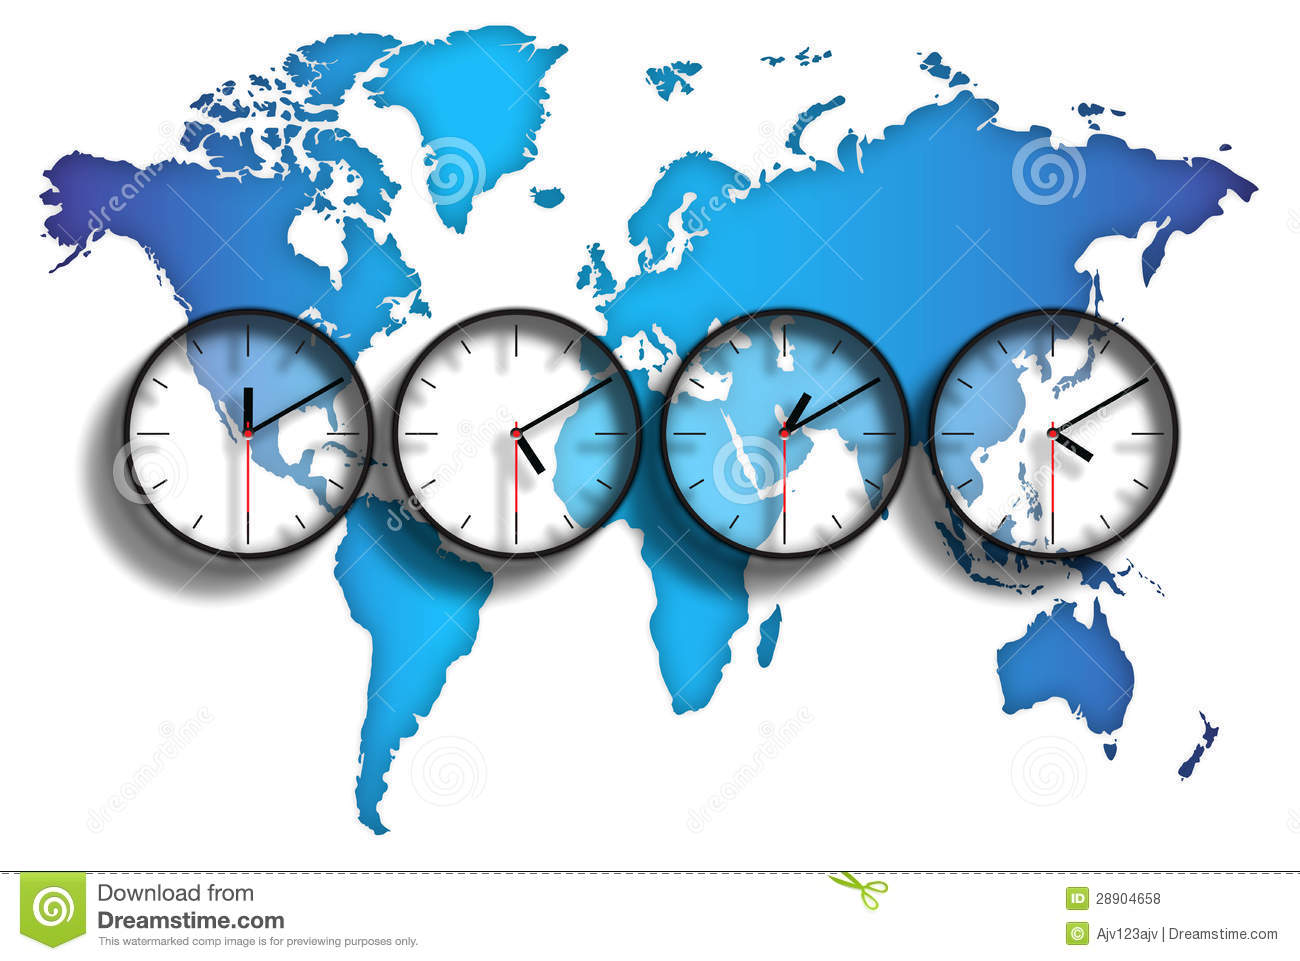 Us Time Zone Differences Clock